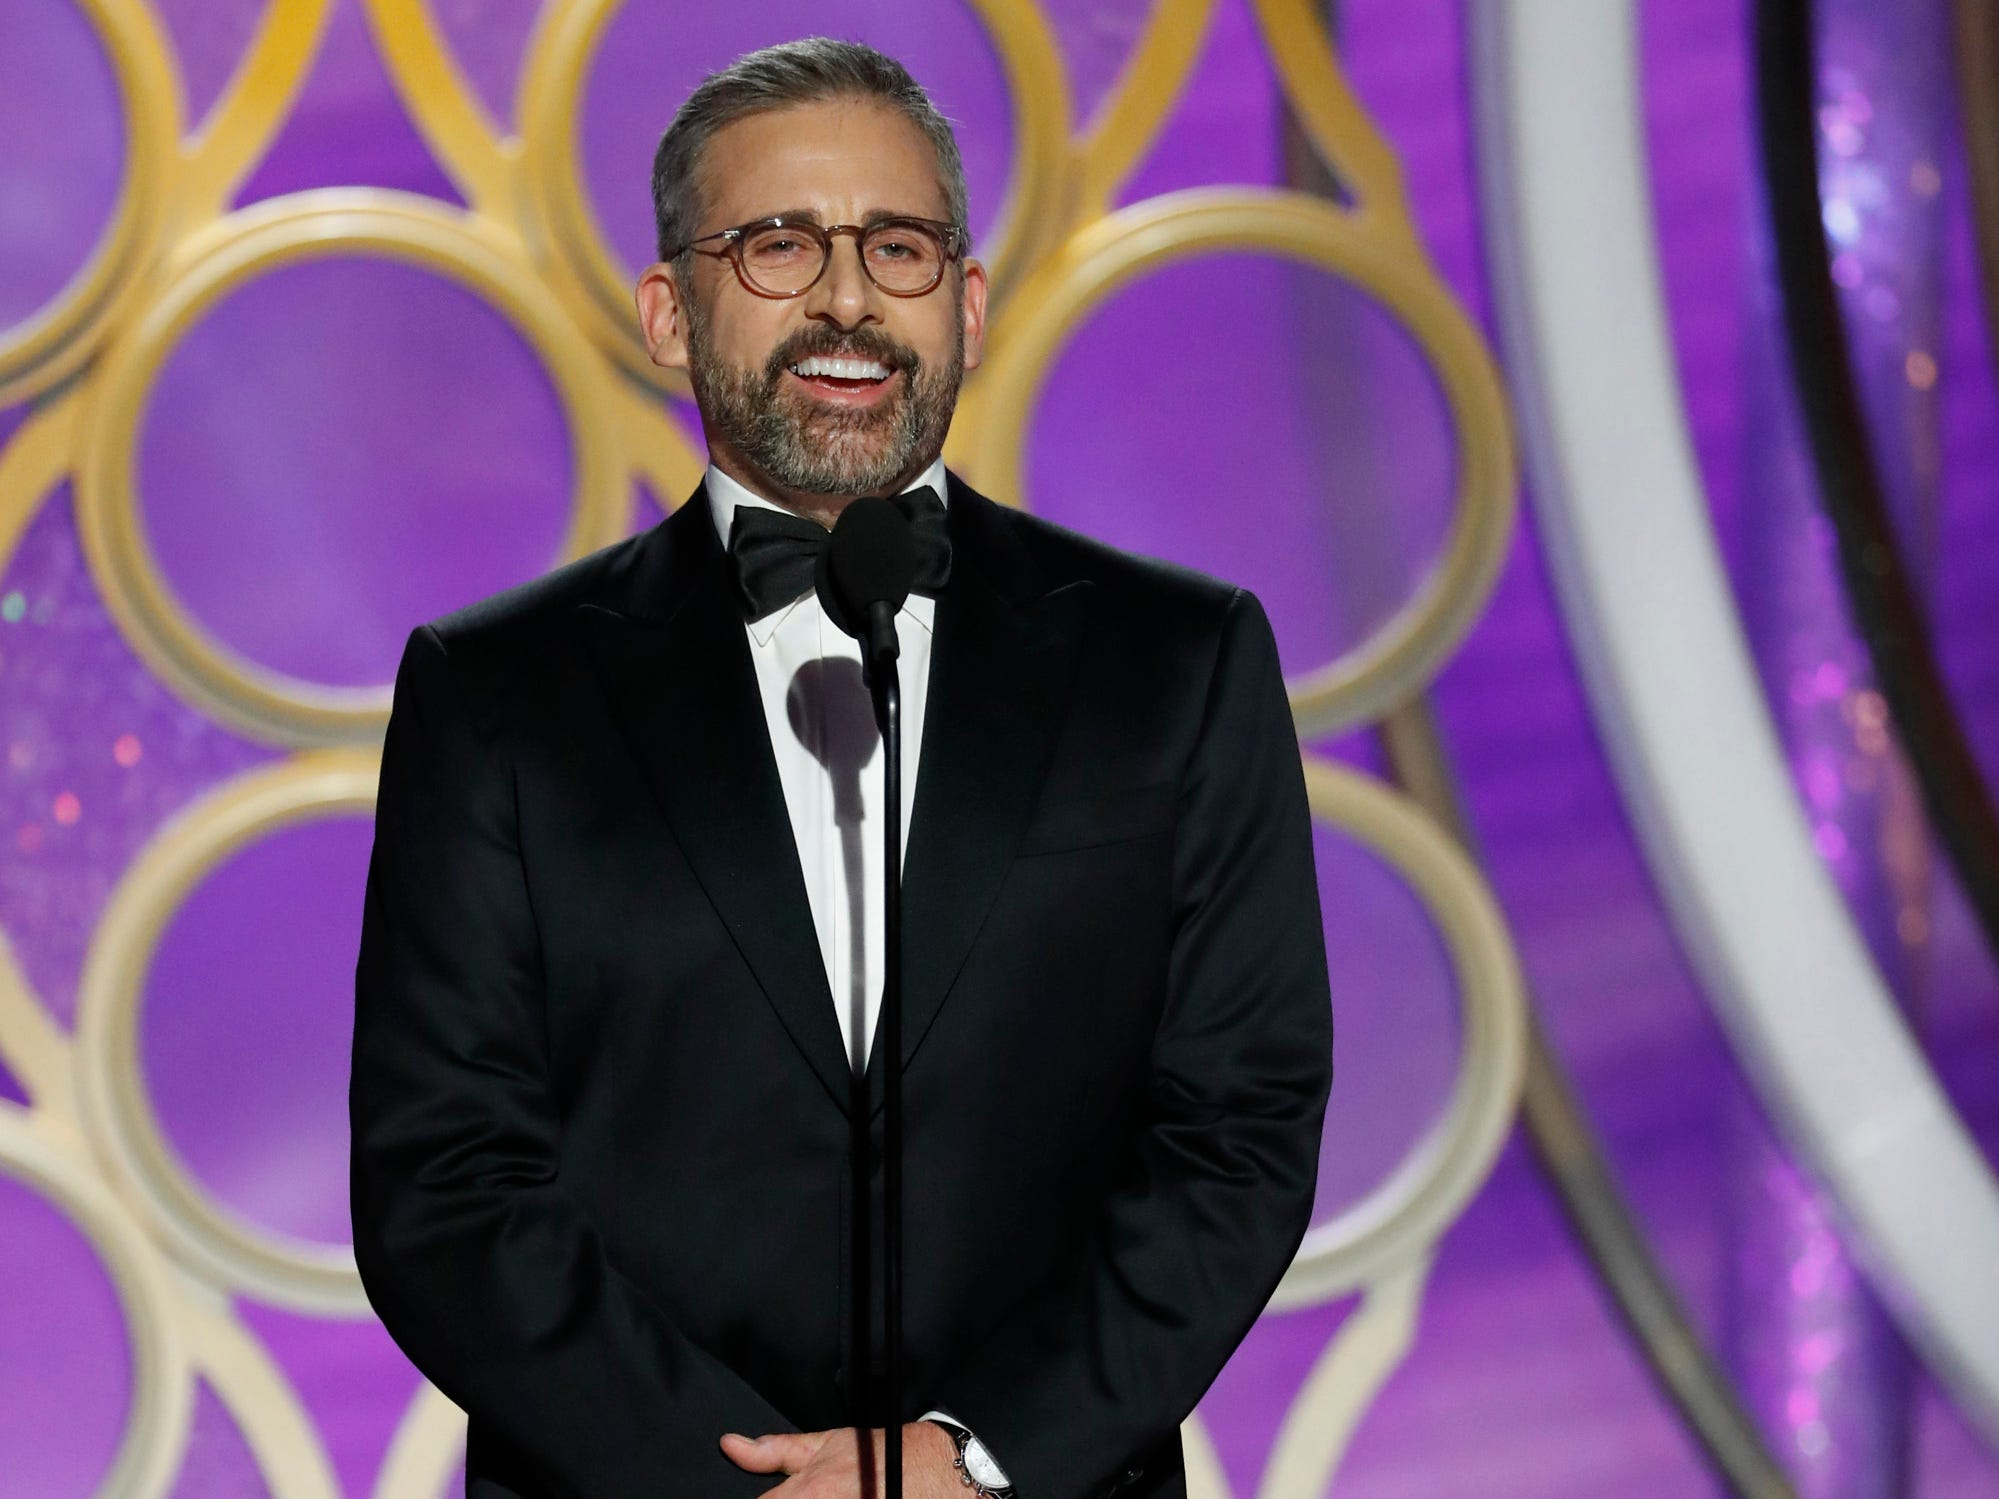 Steve Carell speaks onstage during the 76th Golden Globe Awards.